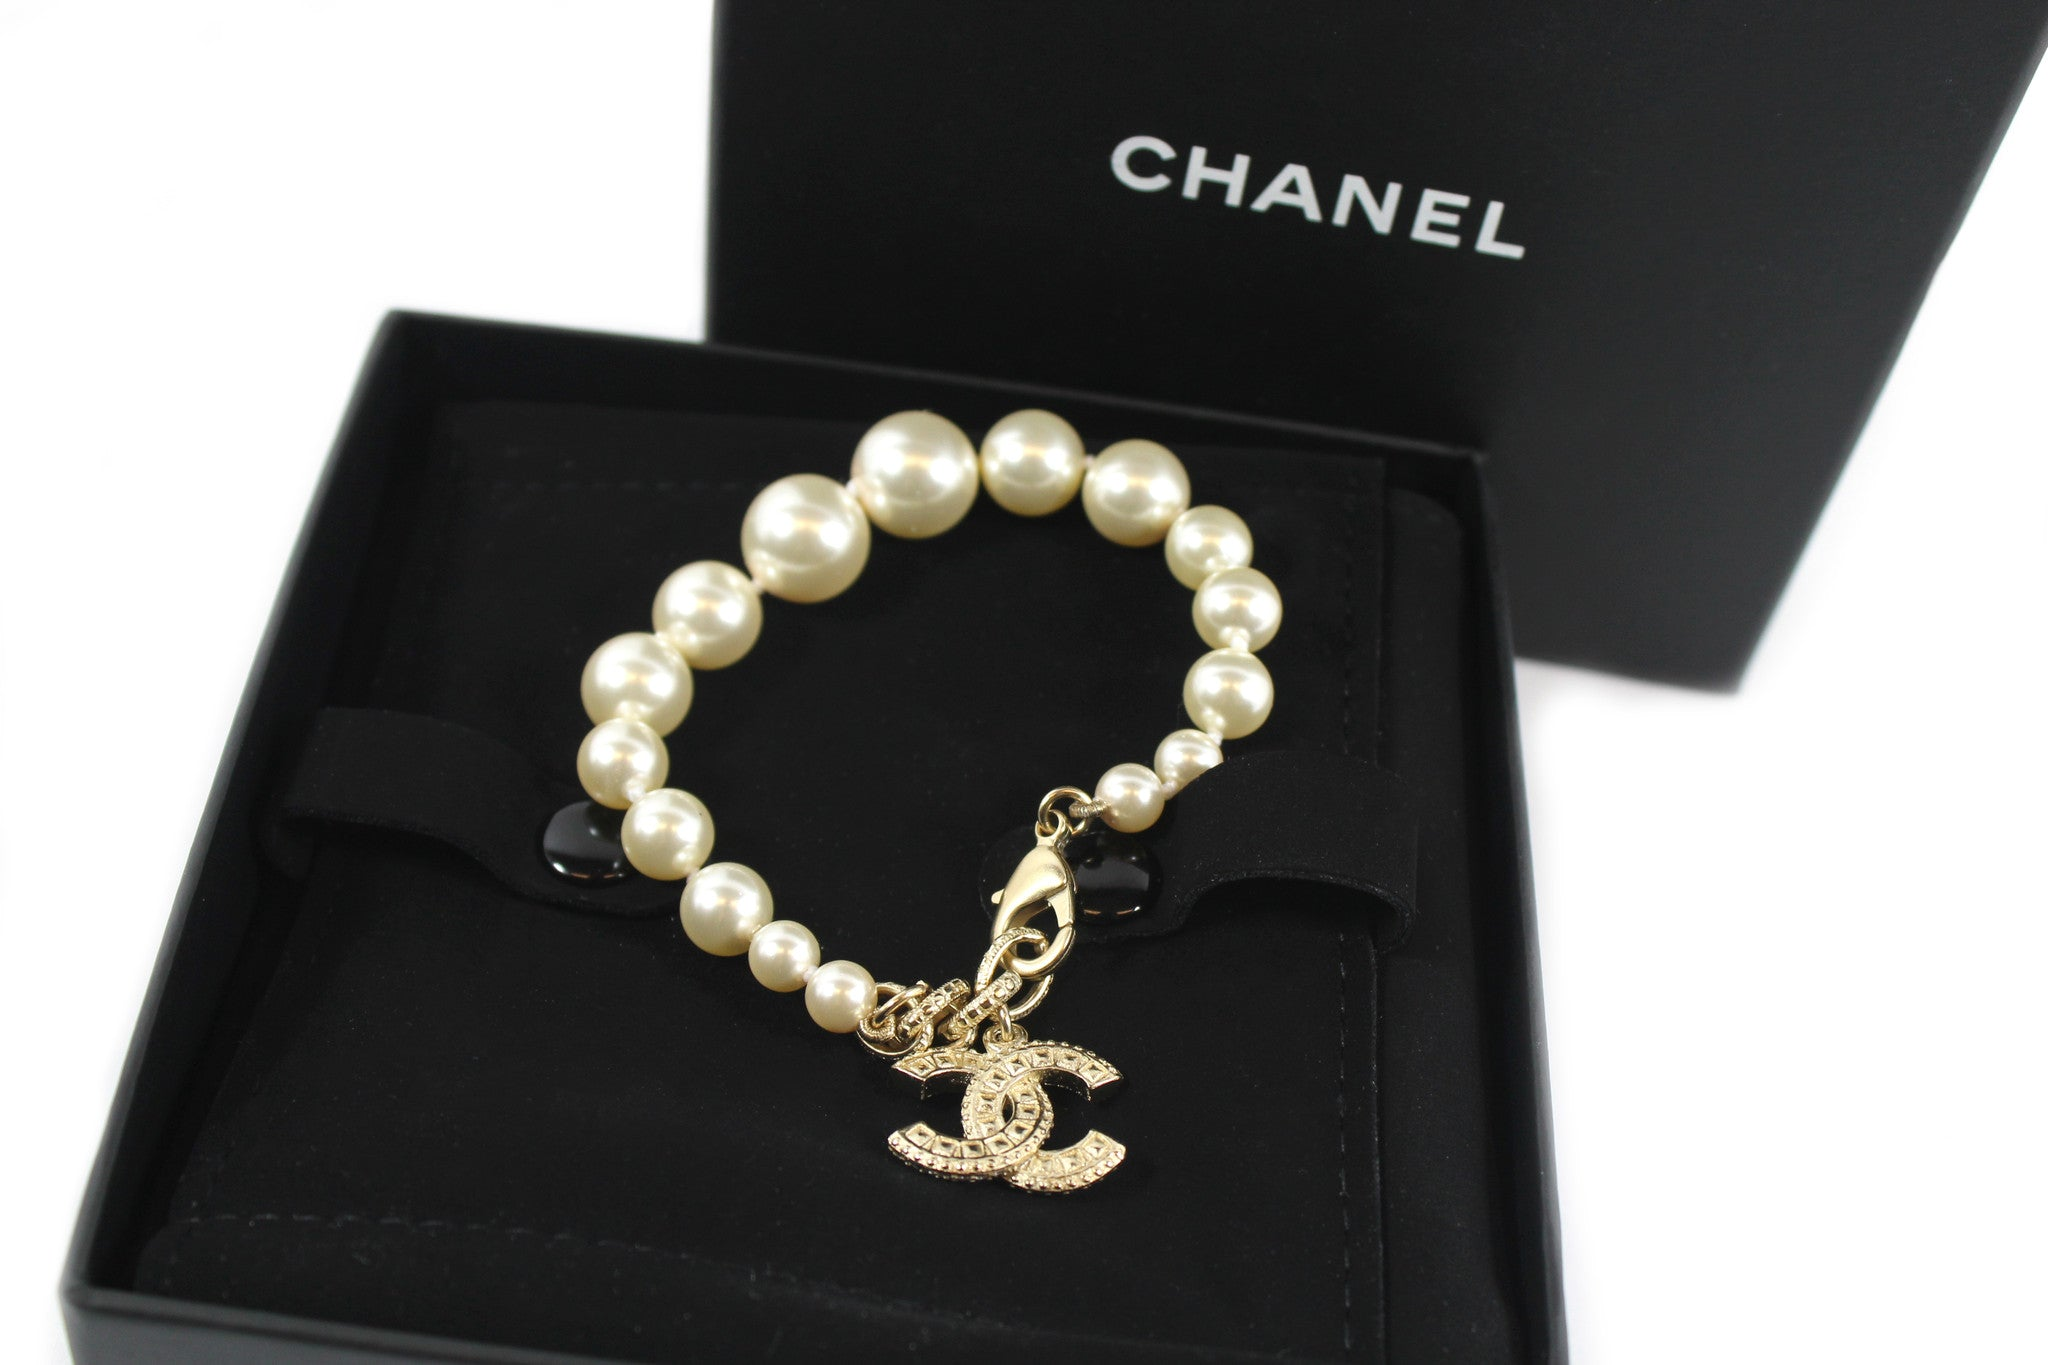 Chanel Pearl and Swarovski Crystals Bracelet - Encore Consignment - 3